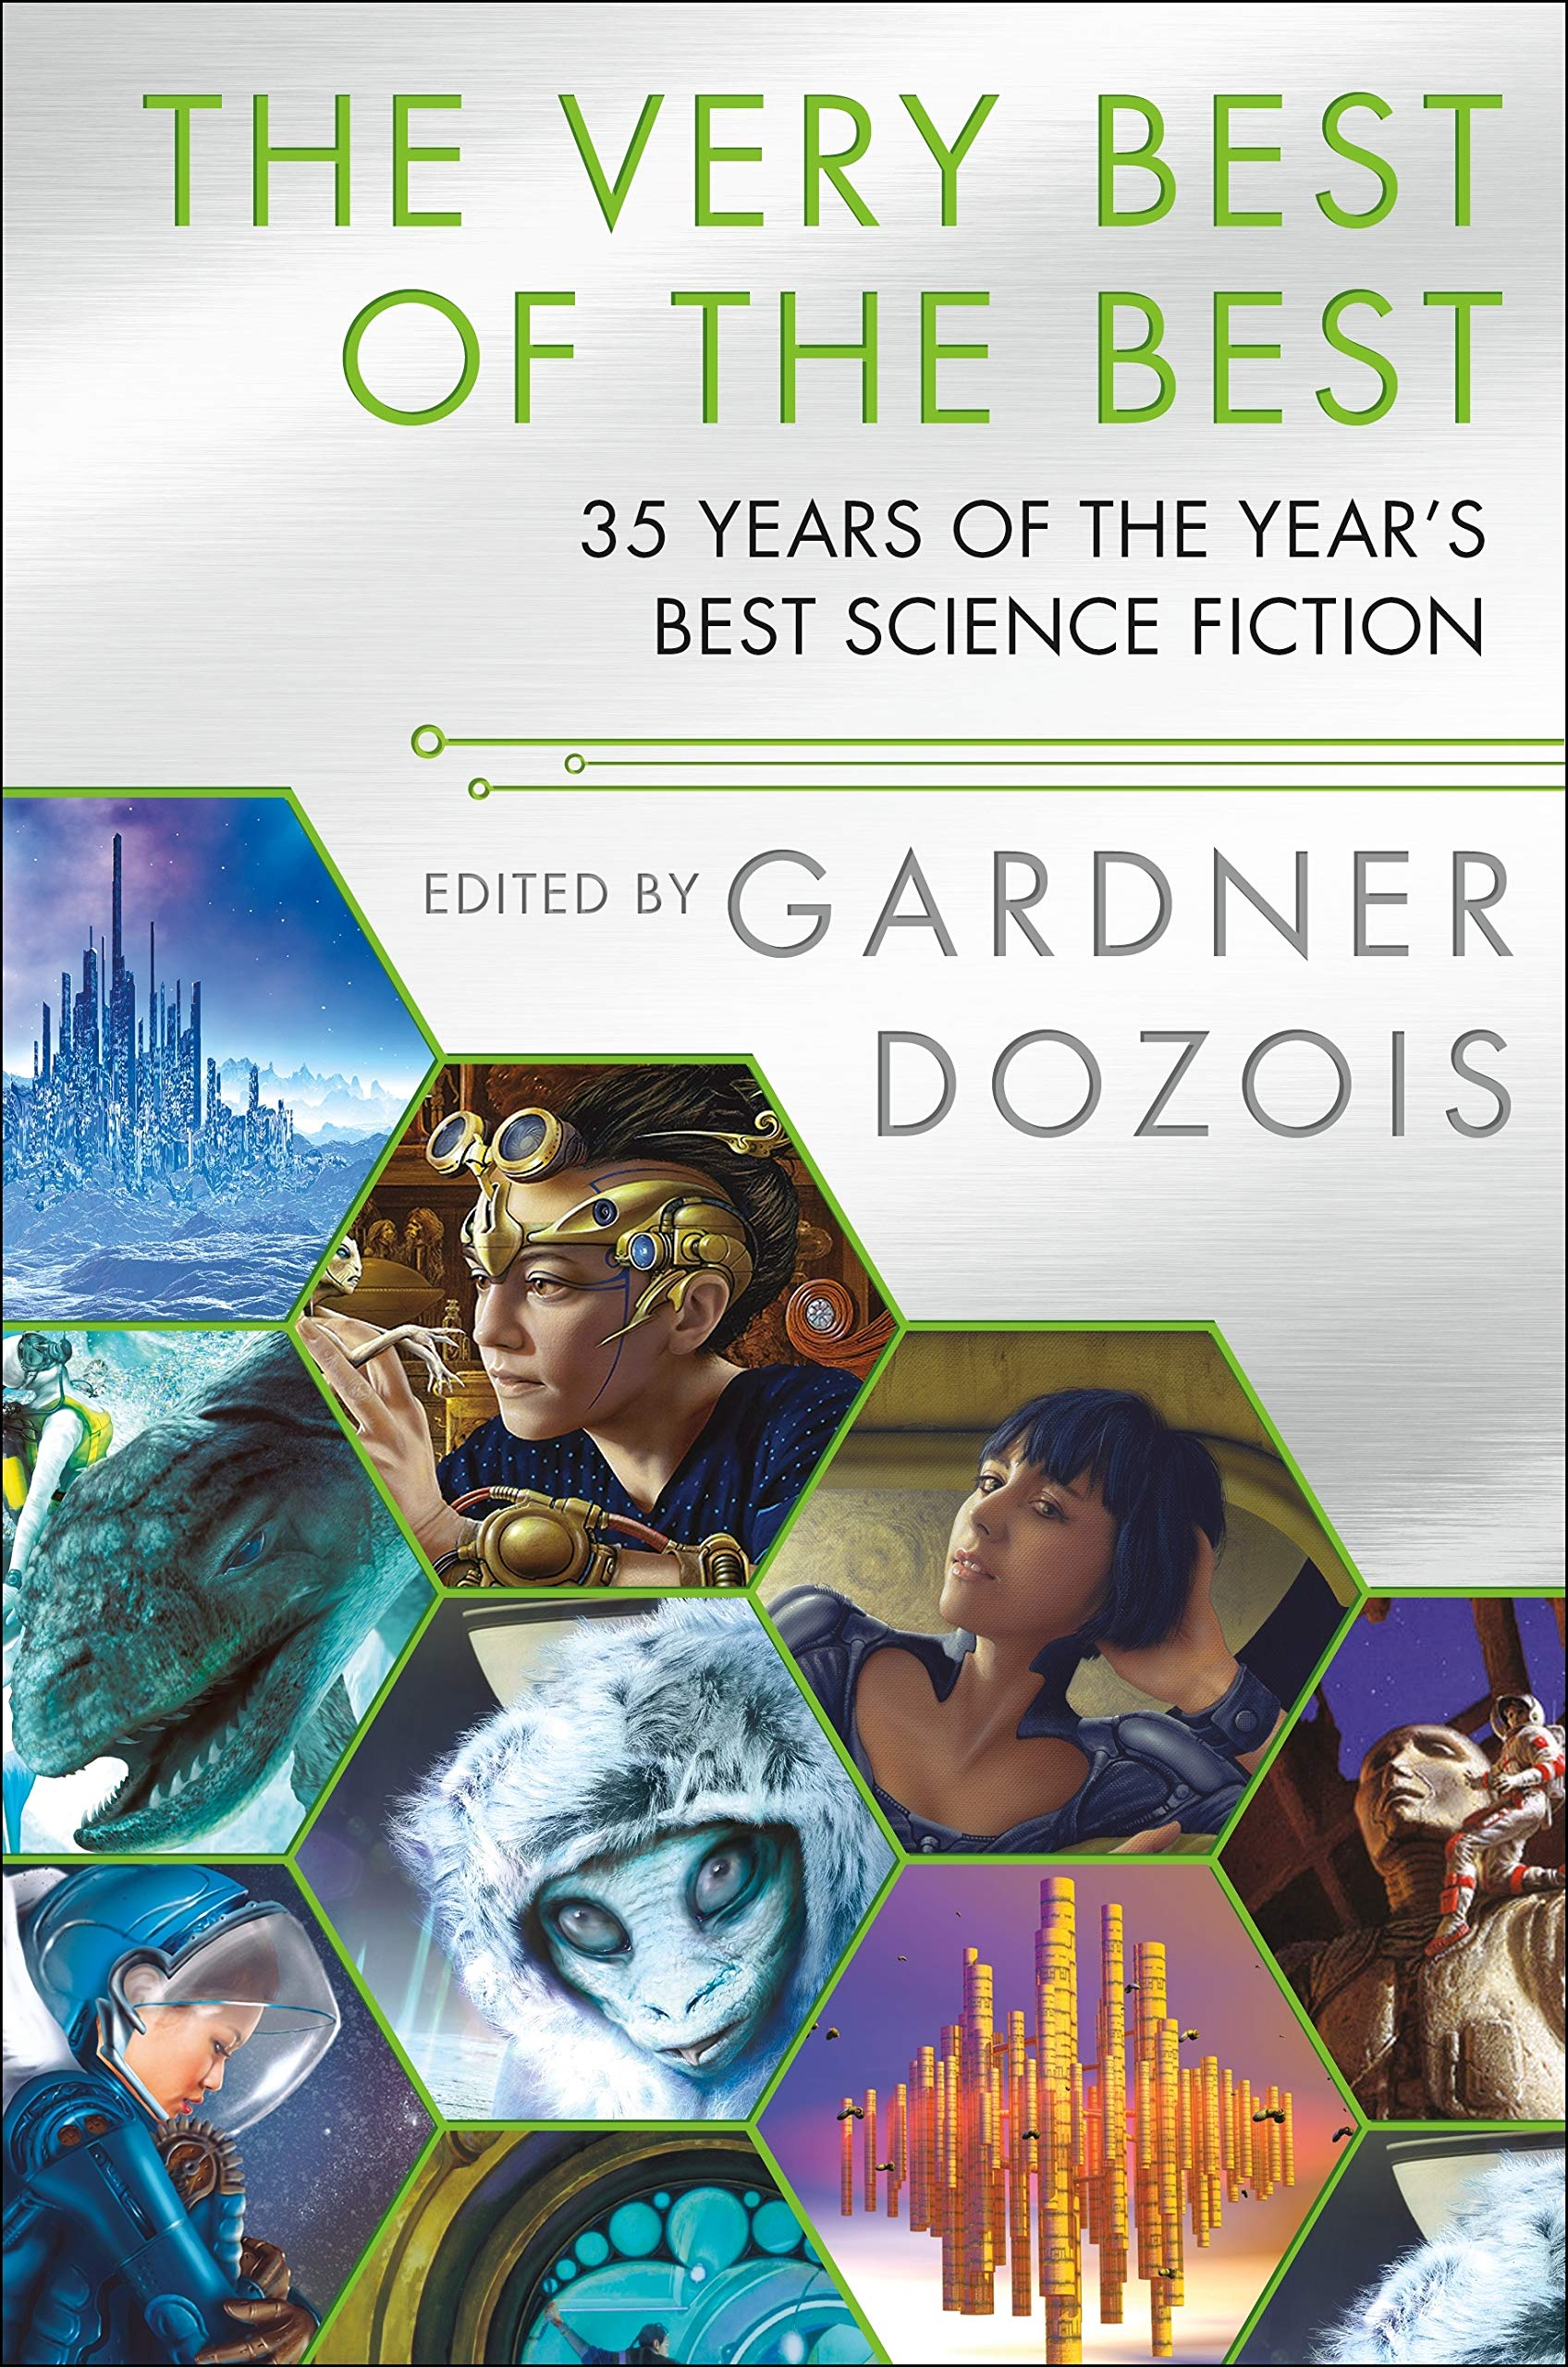 A Final Gift from Gardner: The Very Best of the Best: 35 Years of The Year's Best Science Fiction edited by Gardner Dozois